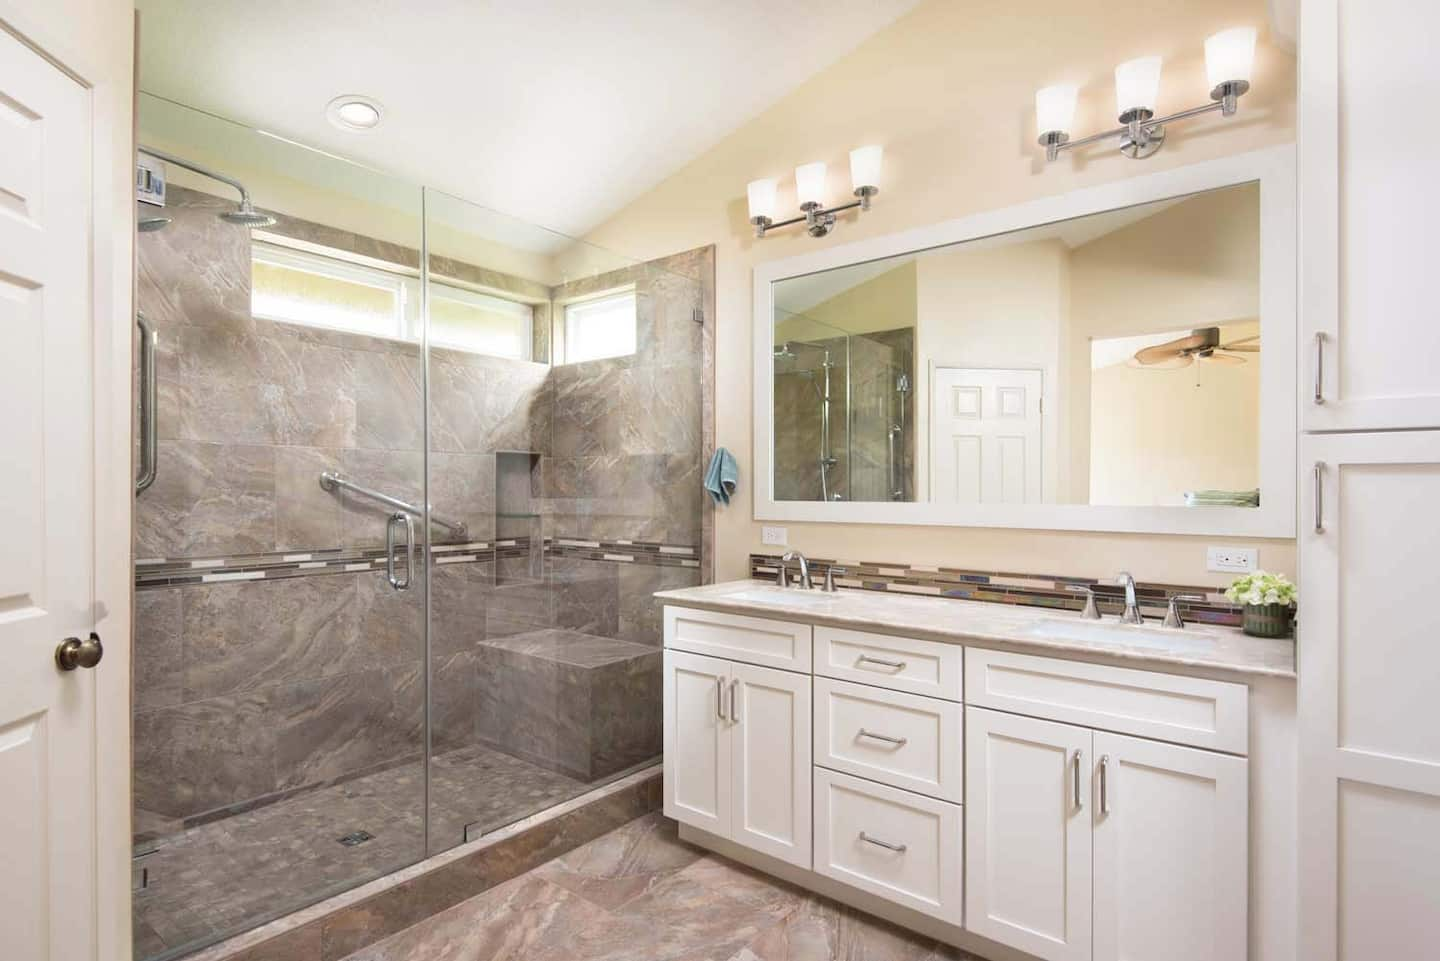 Bathroom Renovation Cost Long Island how much does a bathroom remodel cost? | angie's list